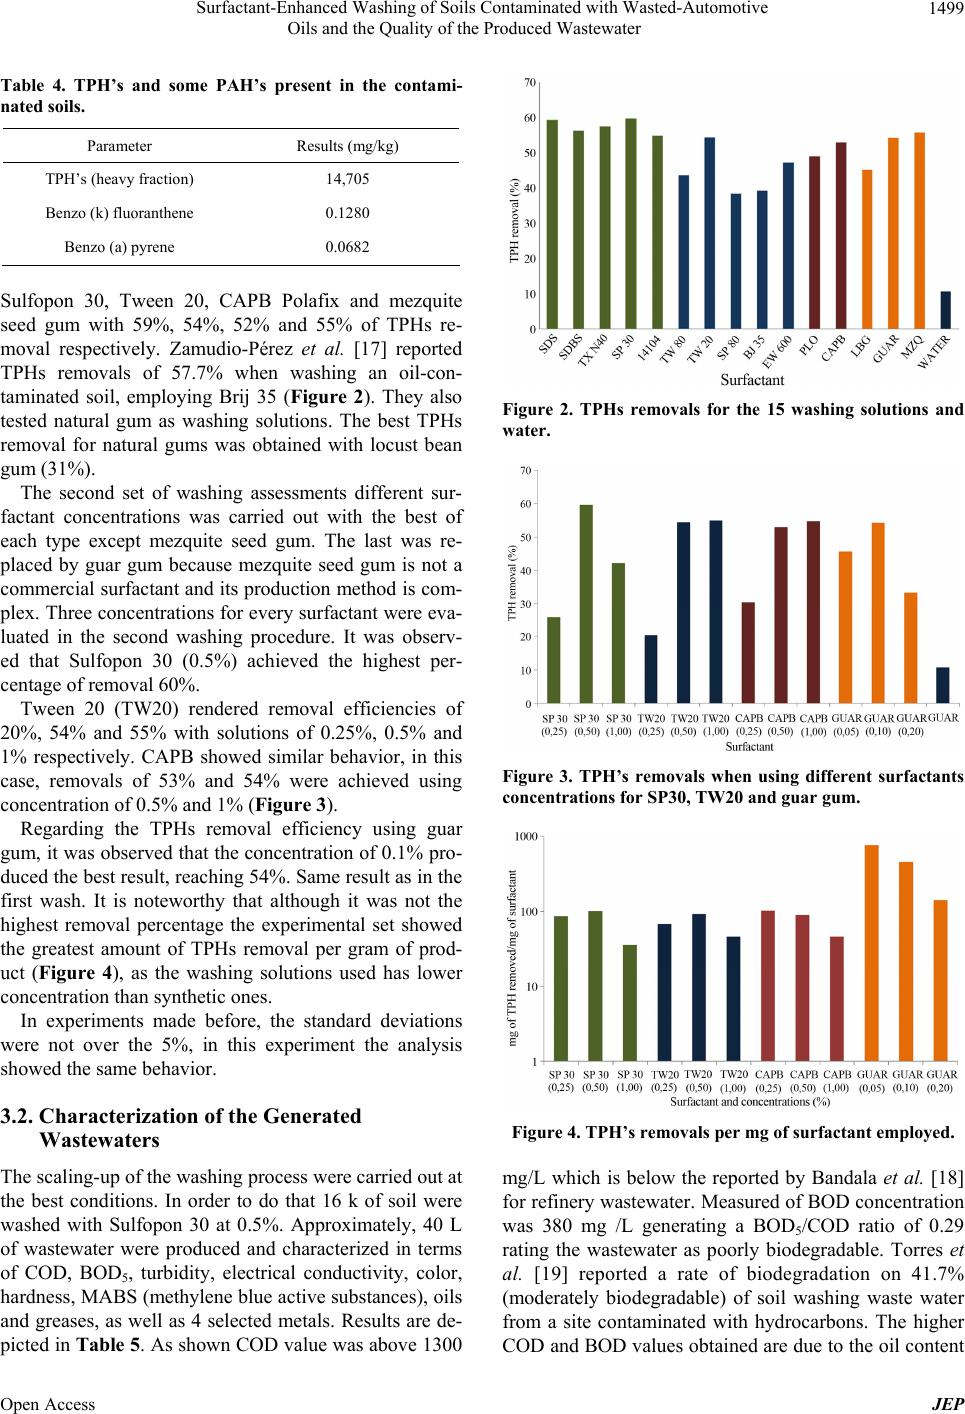 Surfactant enhanced washing of soils contaminated with for Soil quality parameters